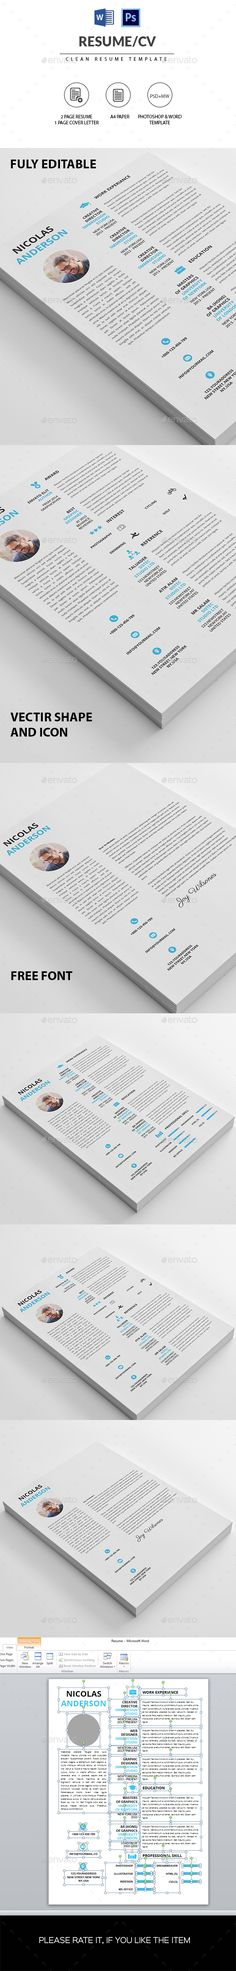 Clean Resume / CV Template PSD, MS Word Docx. Download here: http://graphicriver.net/item/clean-resumecv/16126207?ref=ksioks